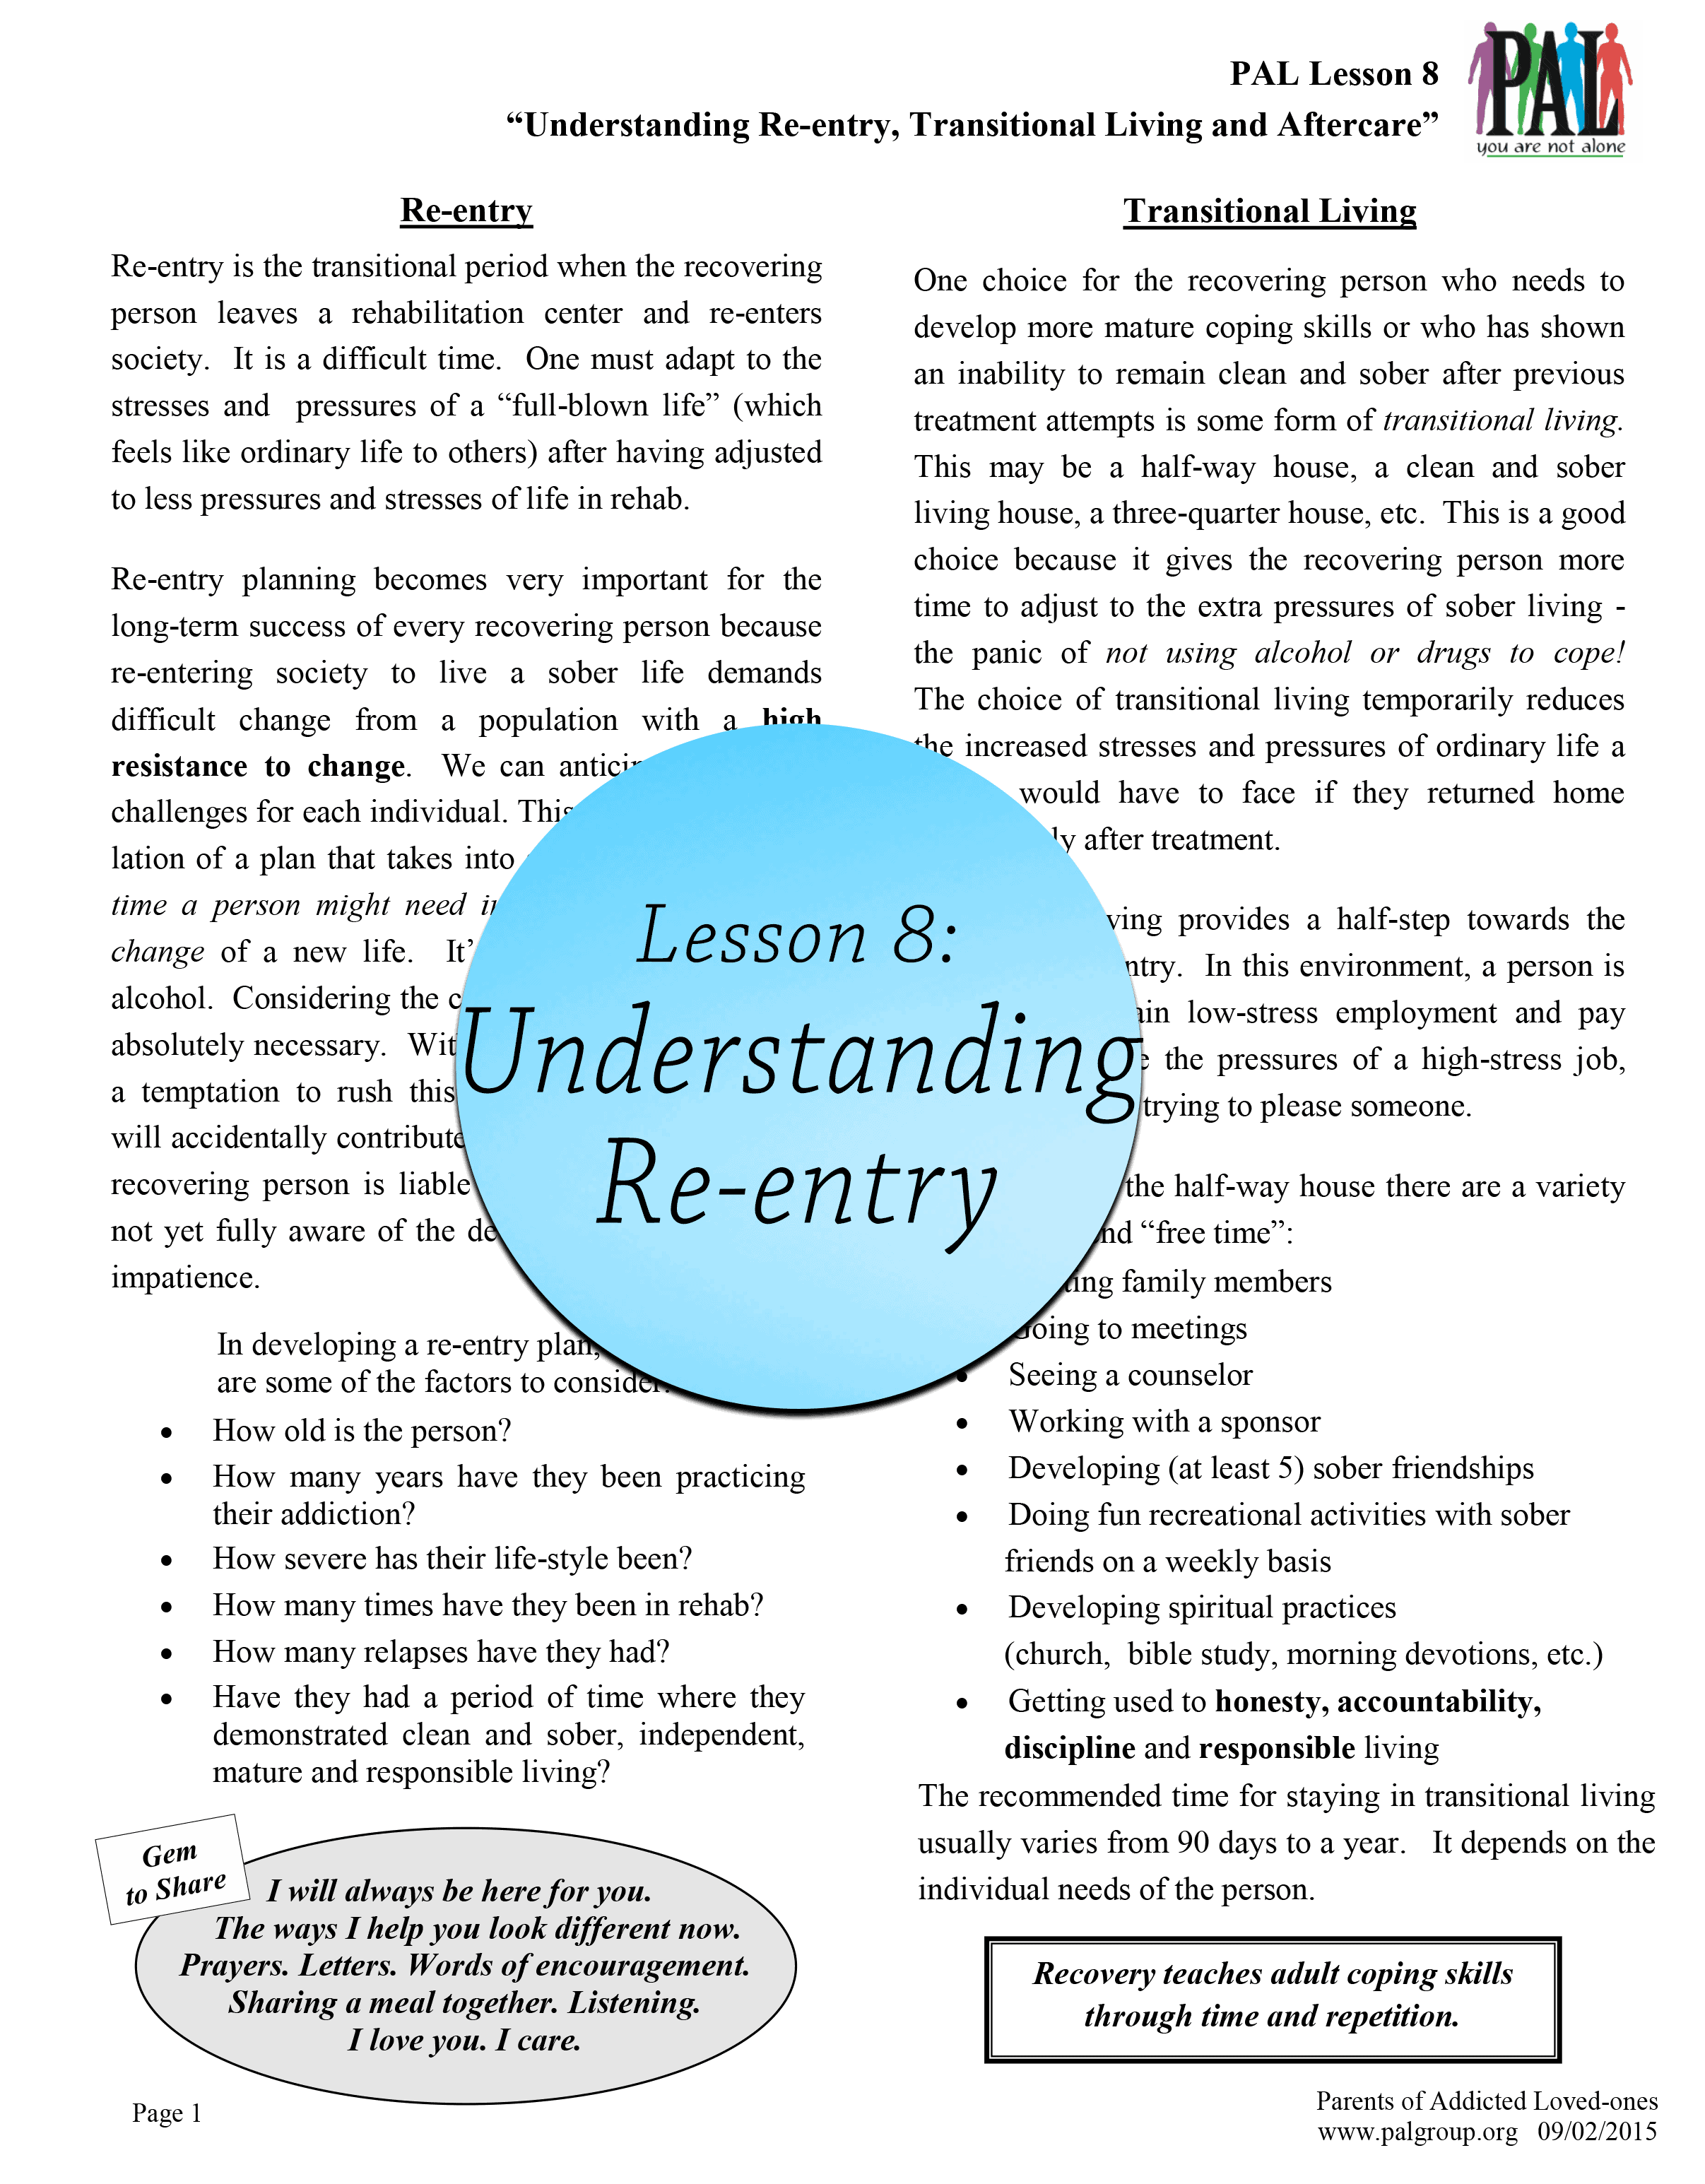 Lesson 8: Understanding Re-Entry